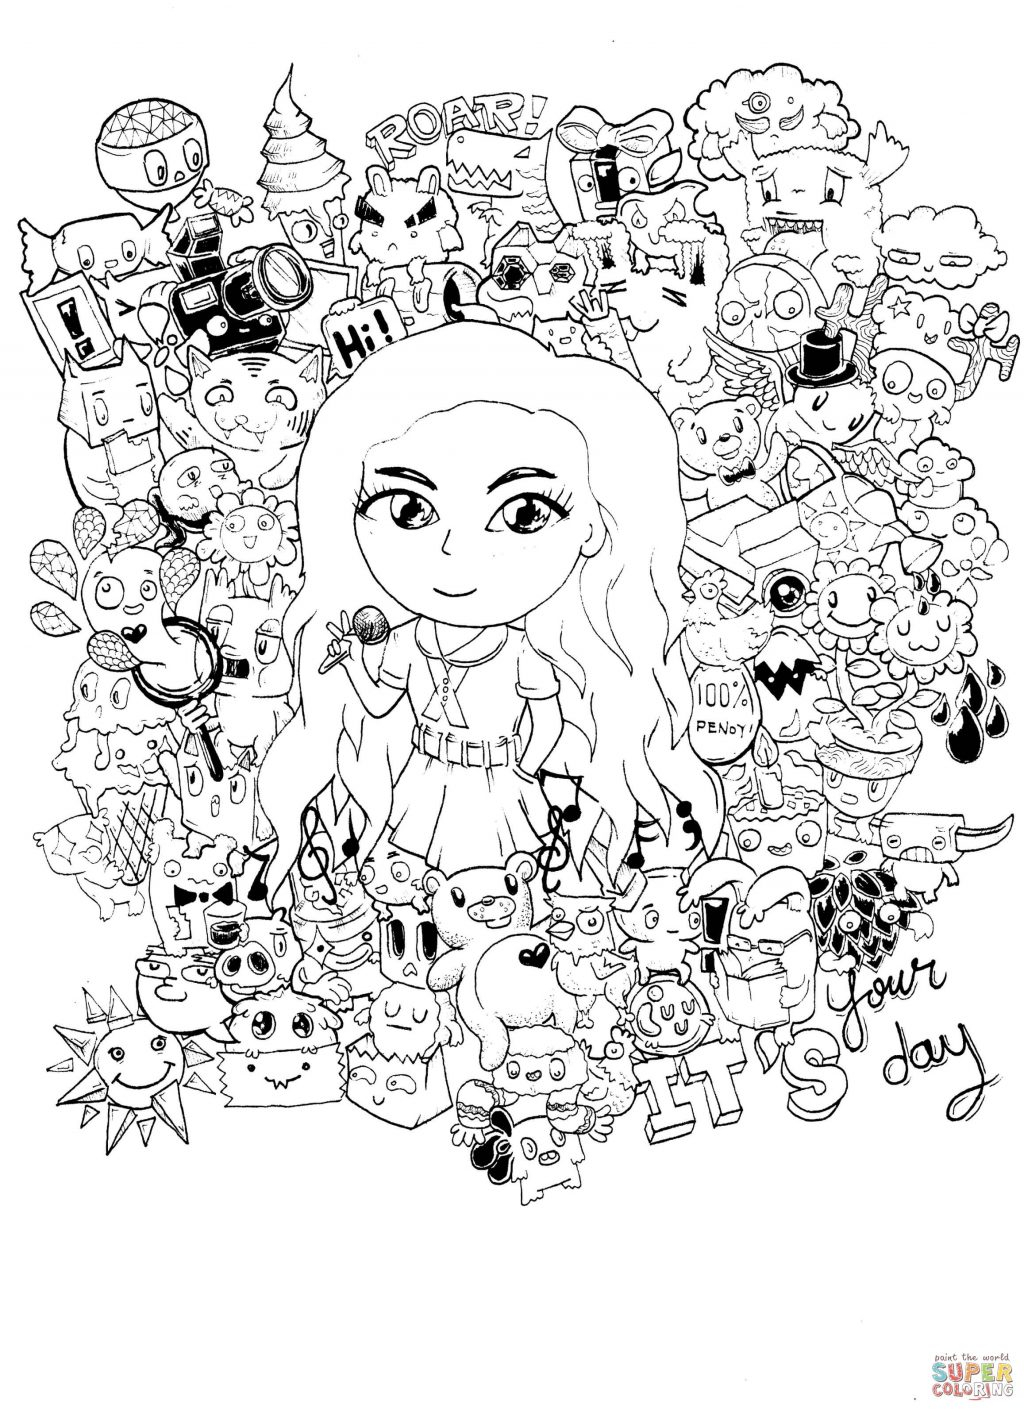 Doodle Art Coloring Pages Coloring Pages Doodle Art Coloring Pages Free To Make Google